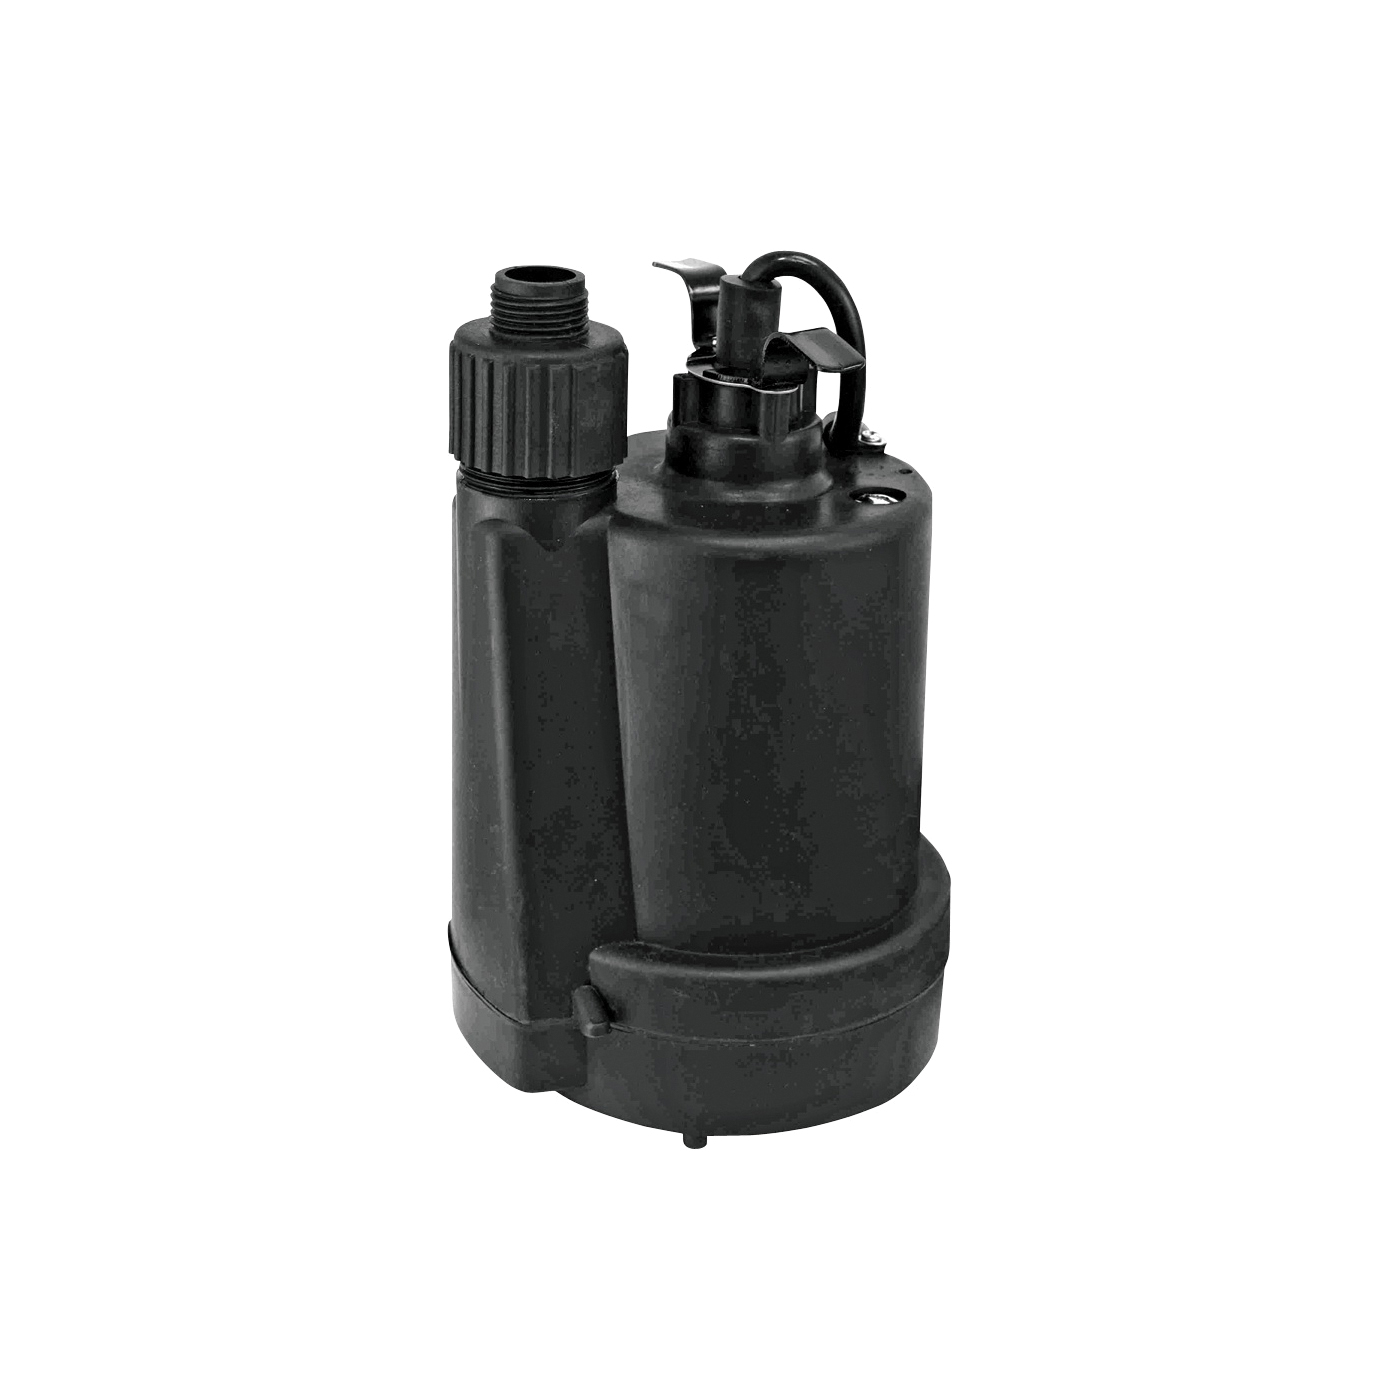 Picture of SUPERIOR PUMP 91250 Utility Pump, 3.8 A, 120 V, 0.25 hp, 1-1/4 in Outlet, 30 gpm, Thermoplastic Impeller